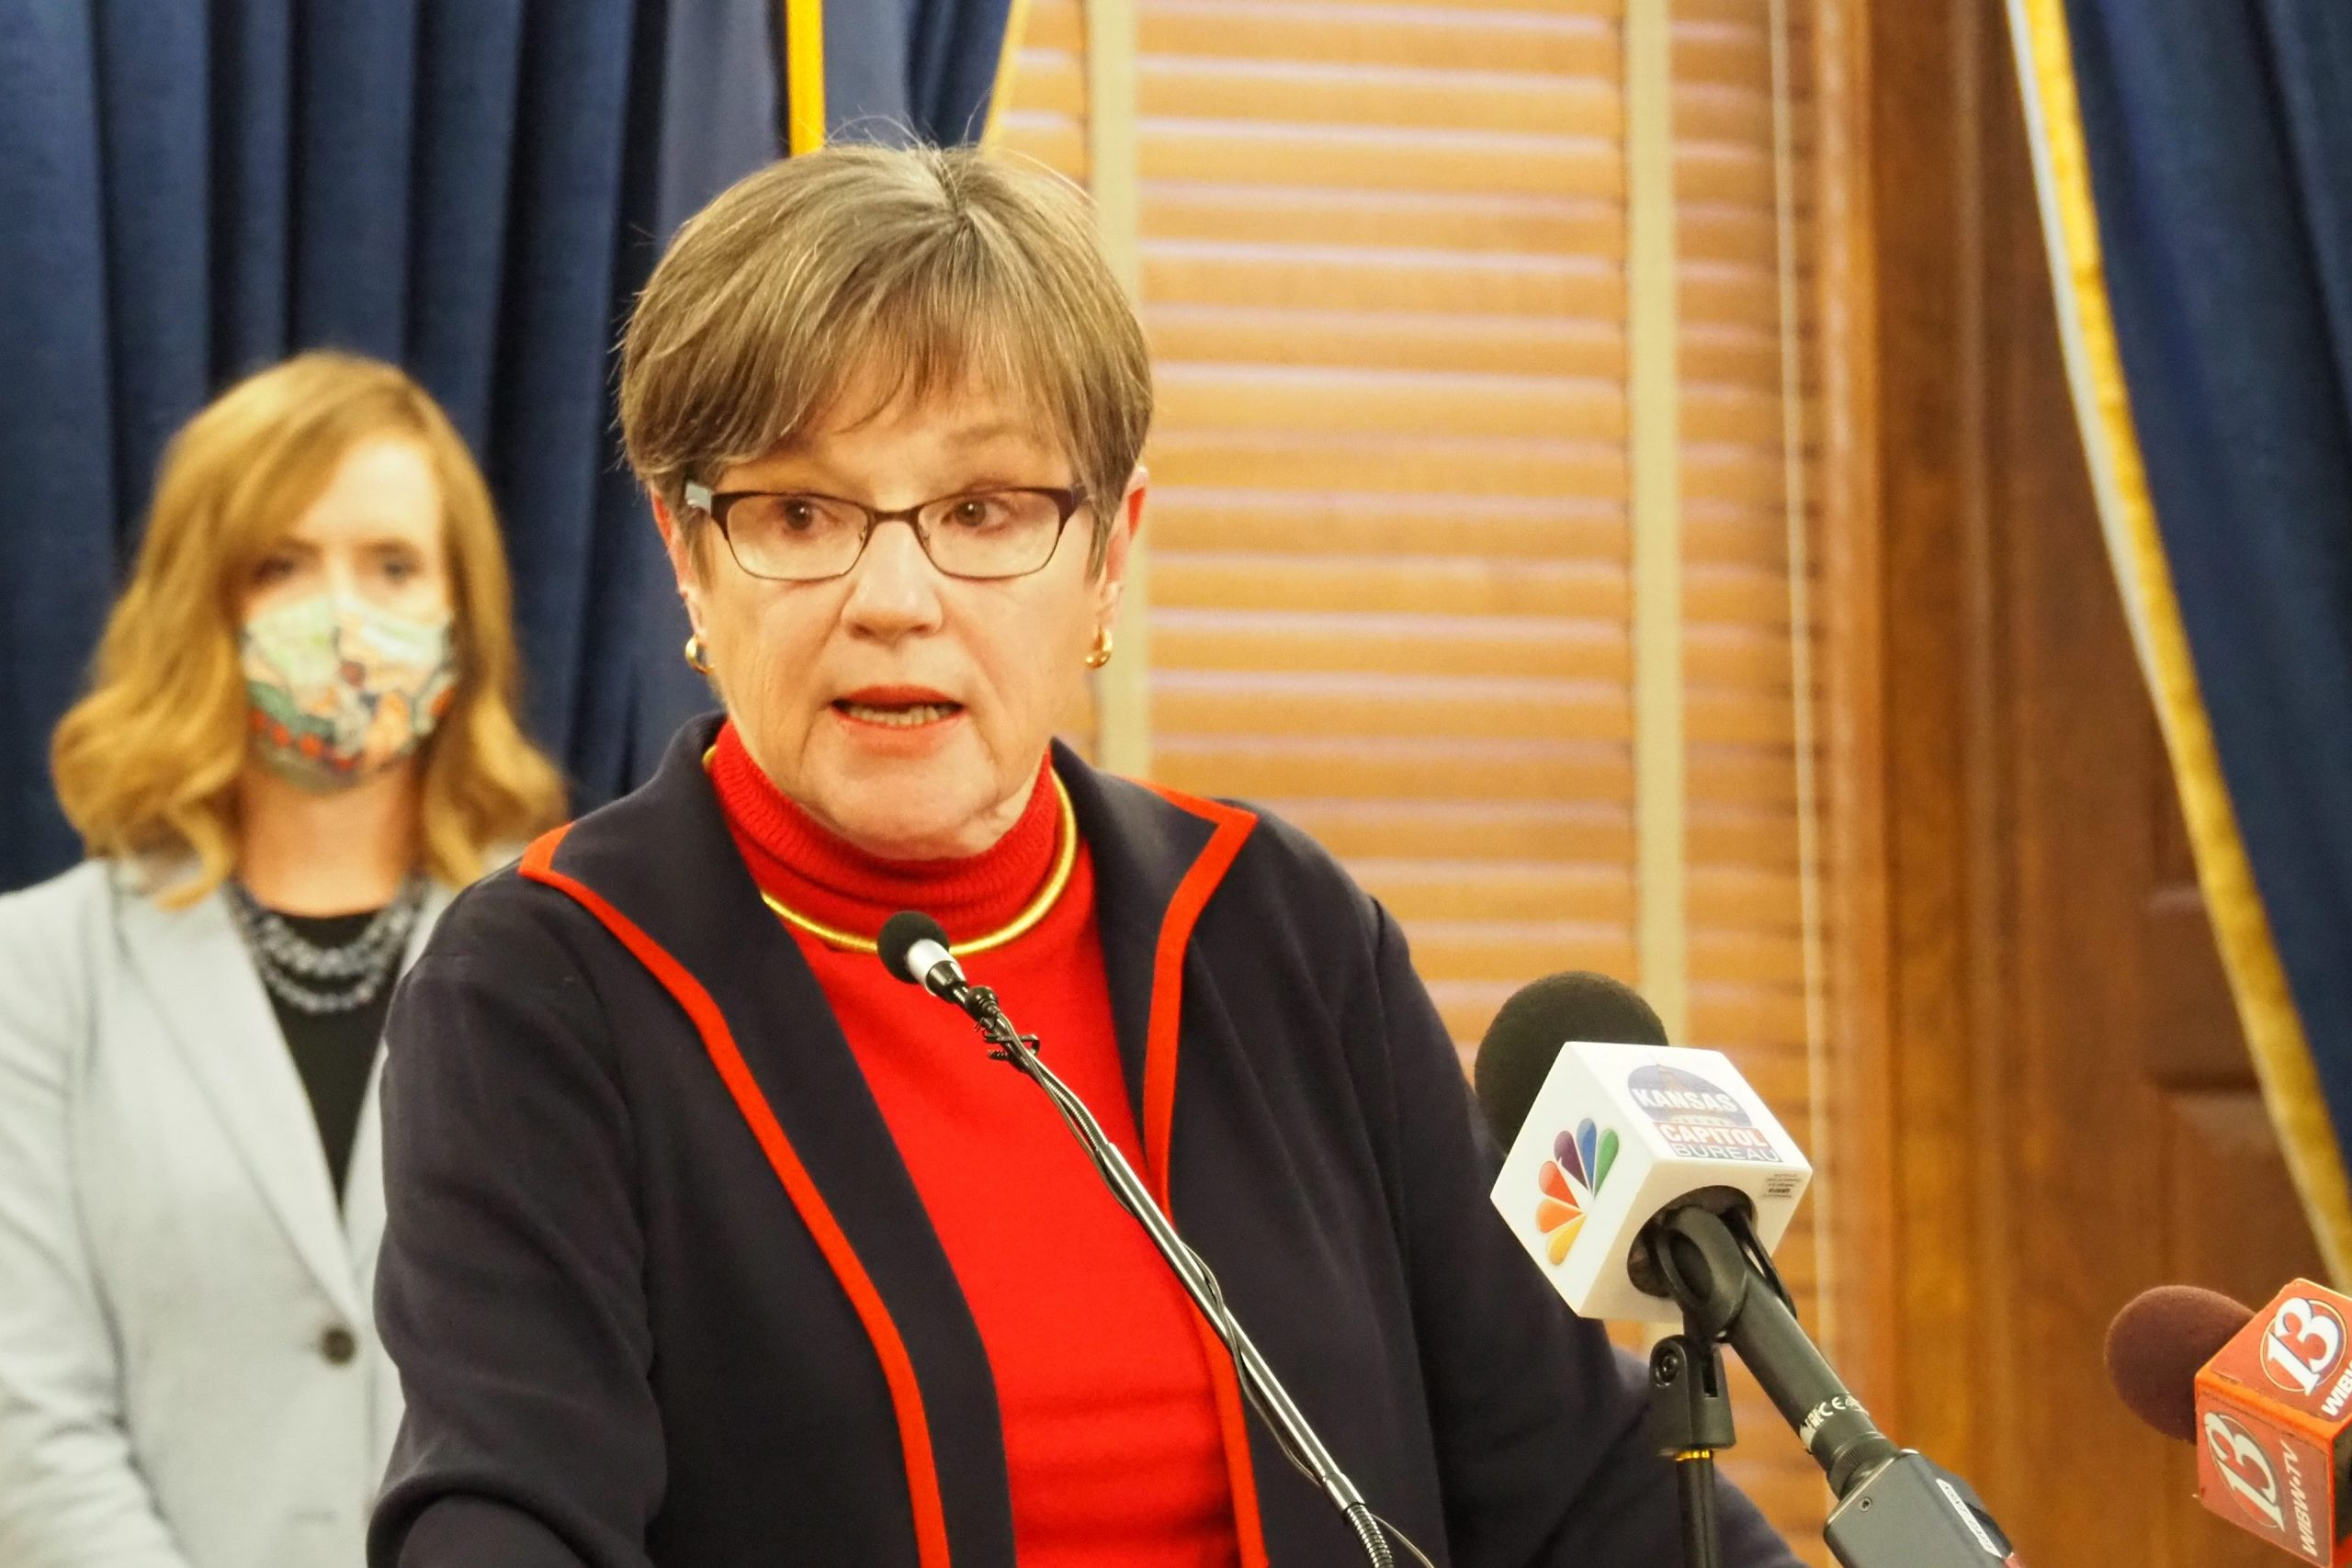 Gov. Laura Kelly joined with House and Senate Democratic leaders to propose Tuesday an increase in the standard deduction on state income taxes. The GOP-led Senate accepted the tax cut, but refused to approve a revenue increase to make it revenue-neutral. (Noah Taborda/Kansas Reflector)